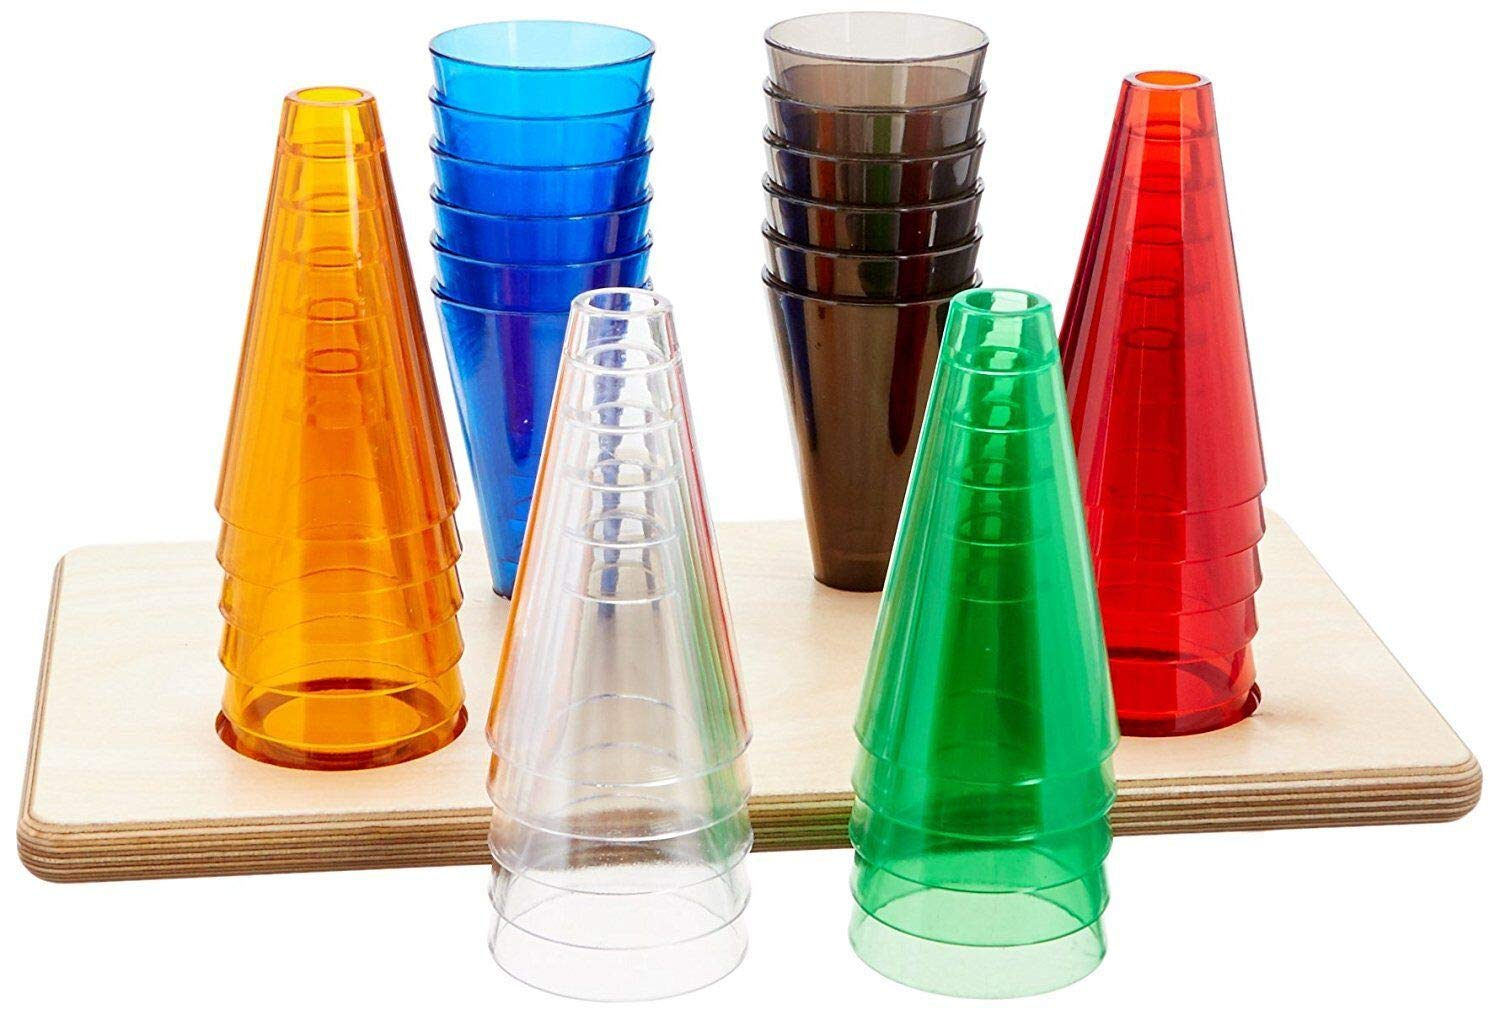 Rolyan Stacking Cones, Set of 12 Replacement Activity Cones with Acrylic Colors for Occupational Therapy, Physical Therapy, Hand Exercises, Perception, and Coordination, Base Not Included by Rolyan